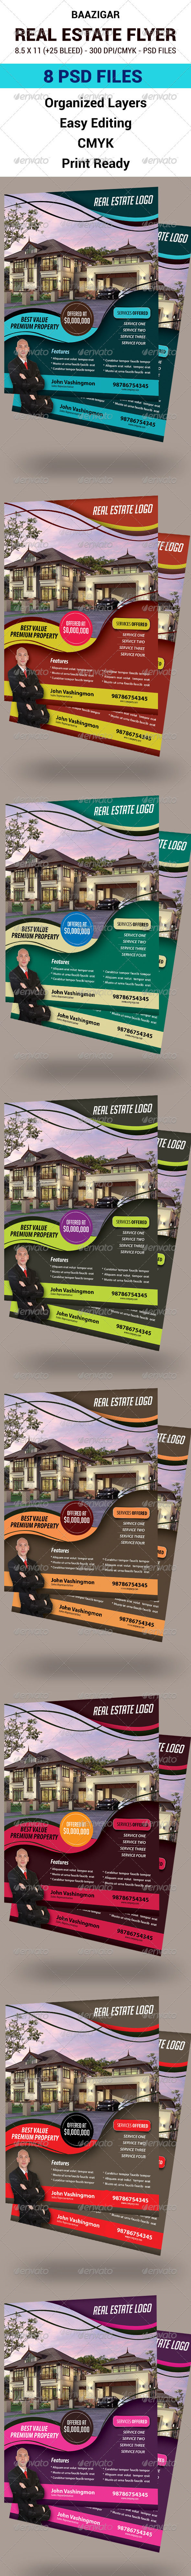 GraphicRiver Real Estate Flyer 7794899